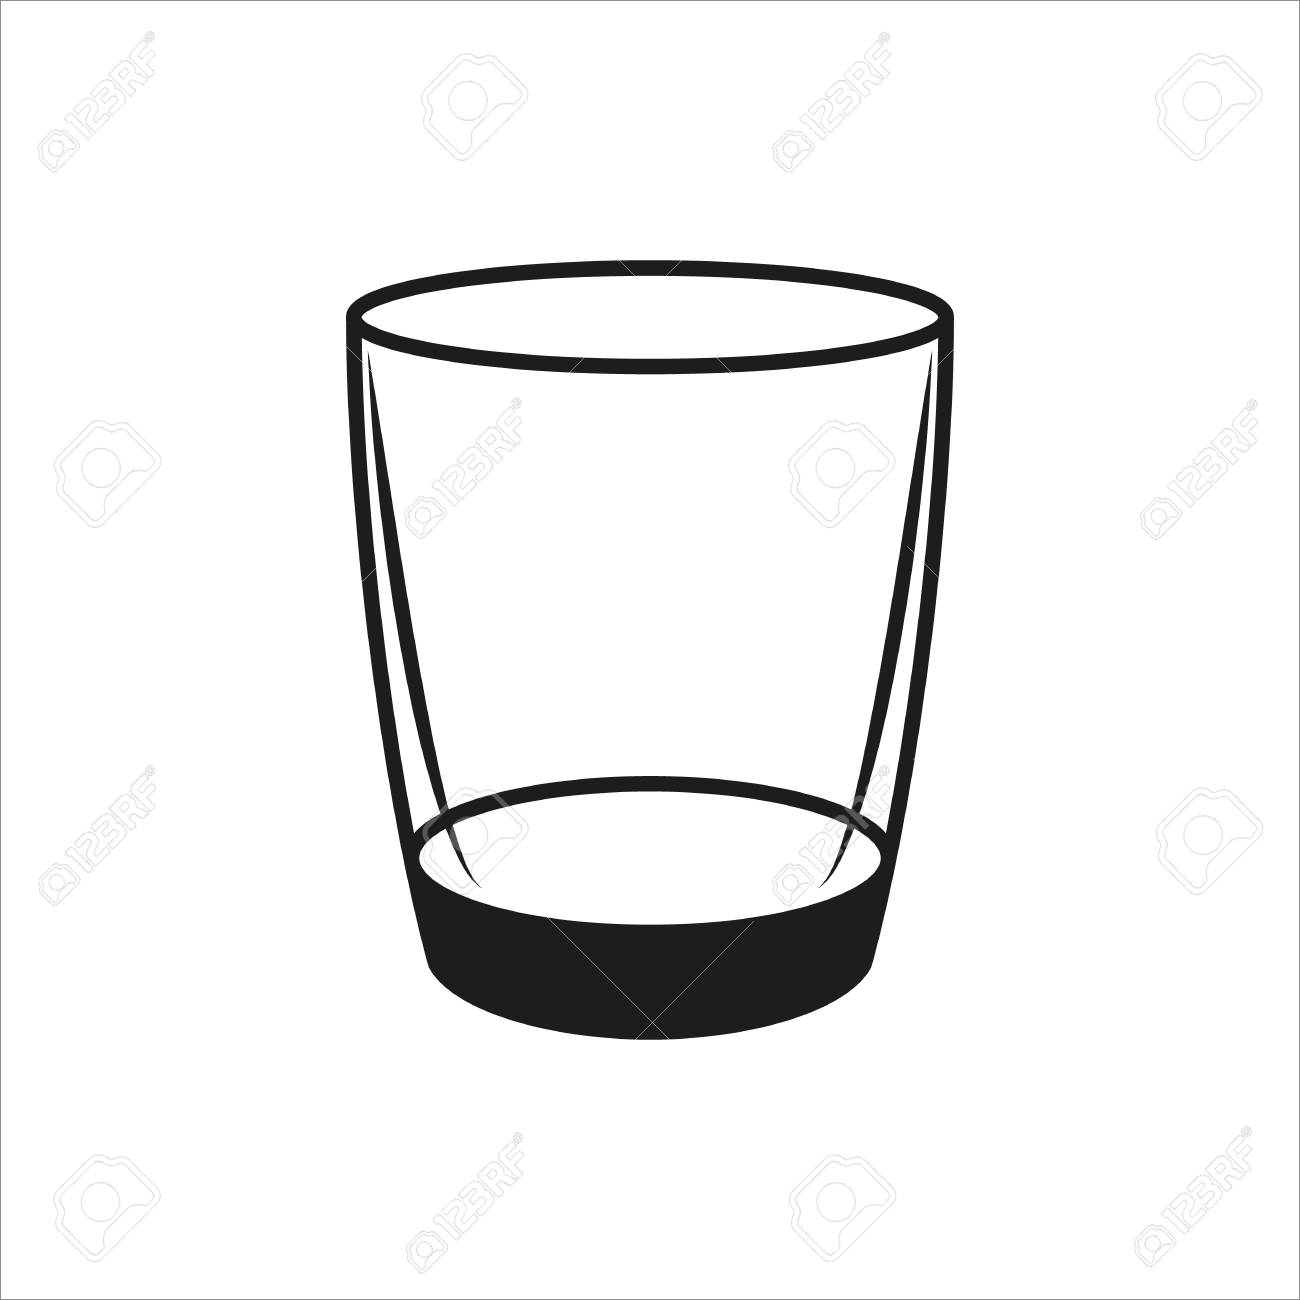 Cliparts making the web. Glasses clipart empty glass